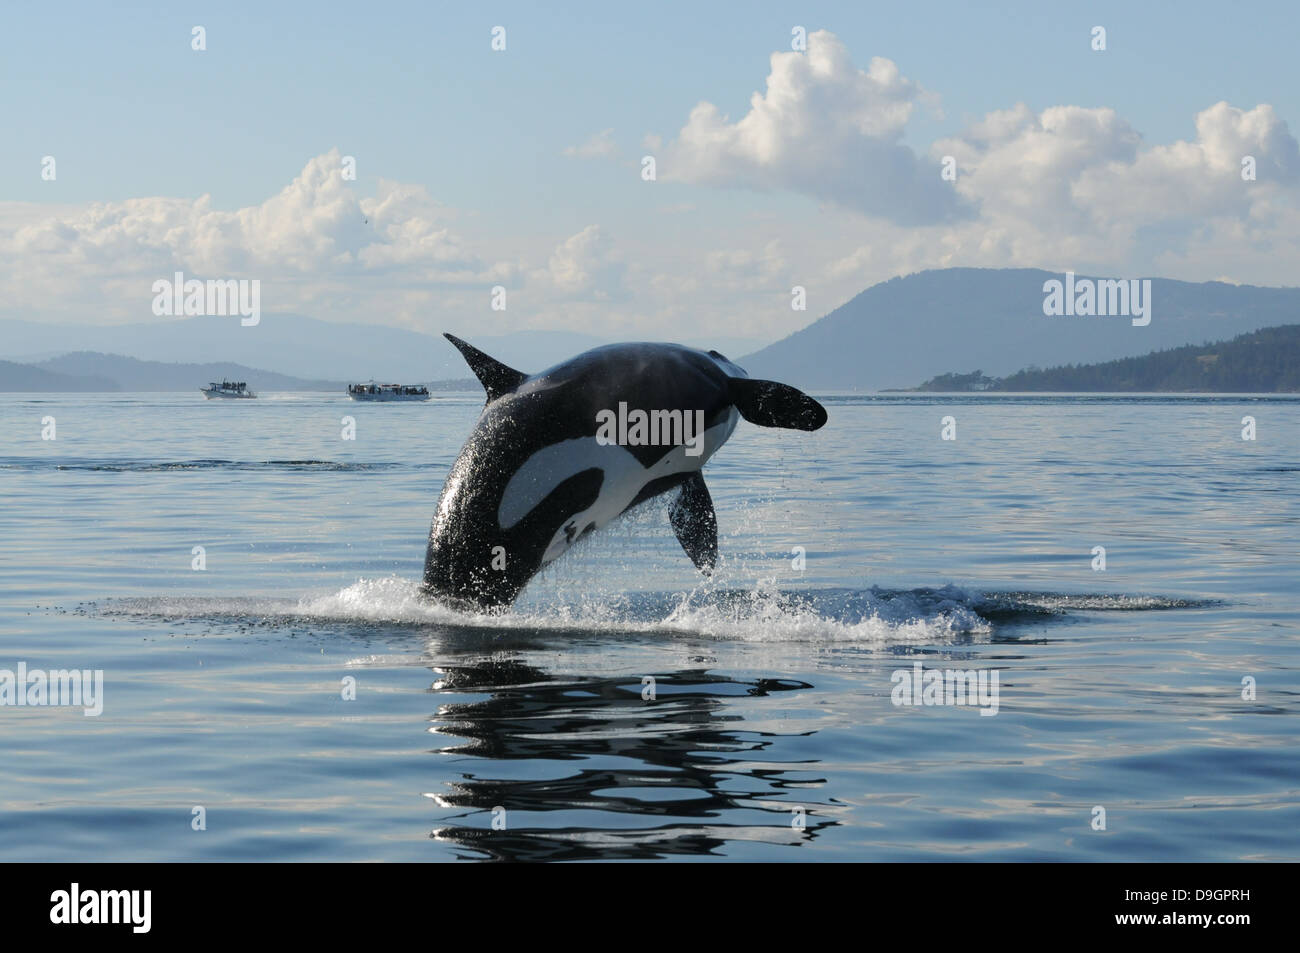 a female killer whale breaches with whale-watching boats in the background - Stock Image